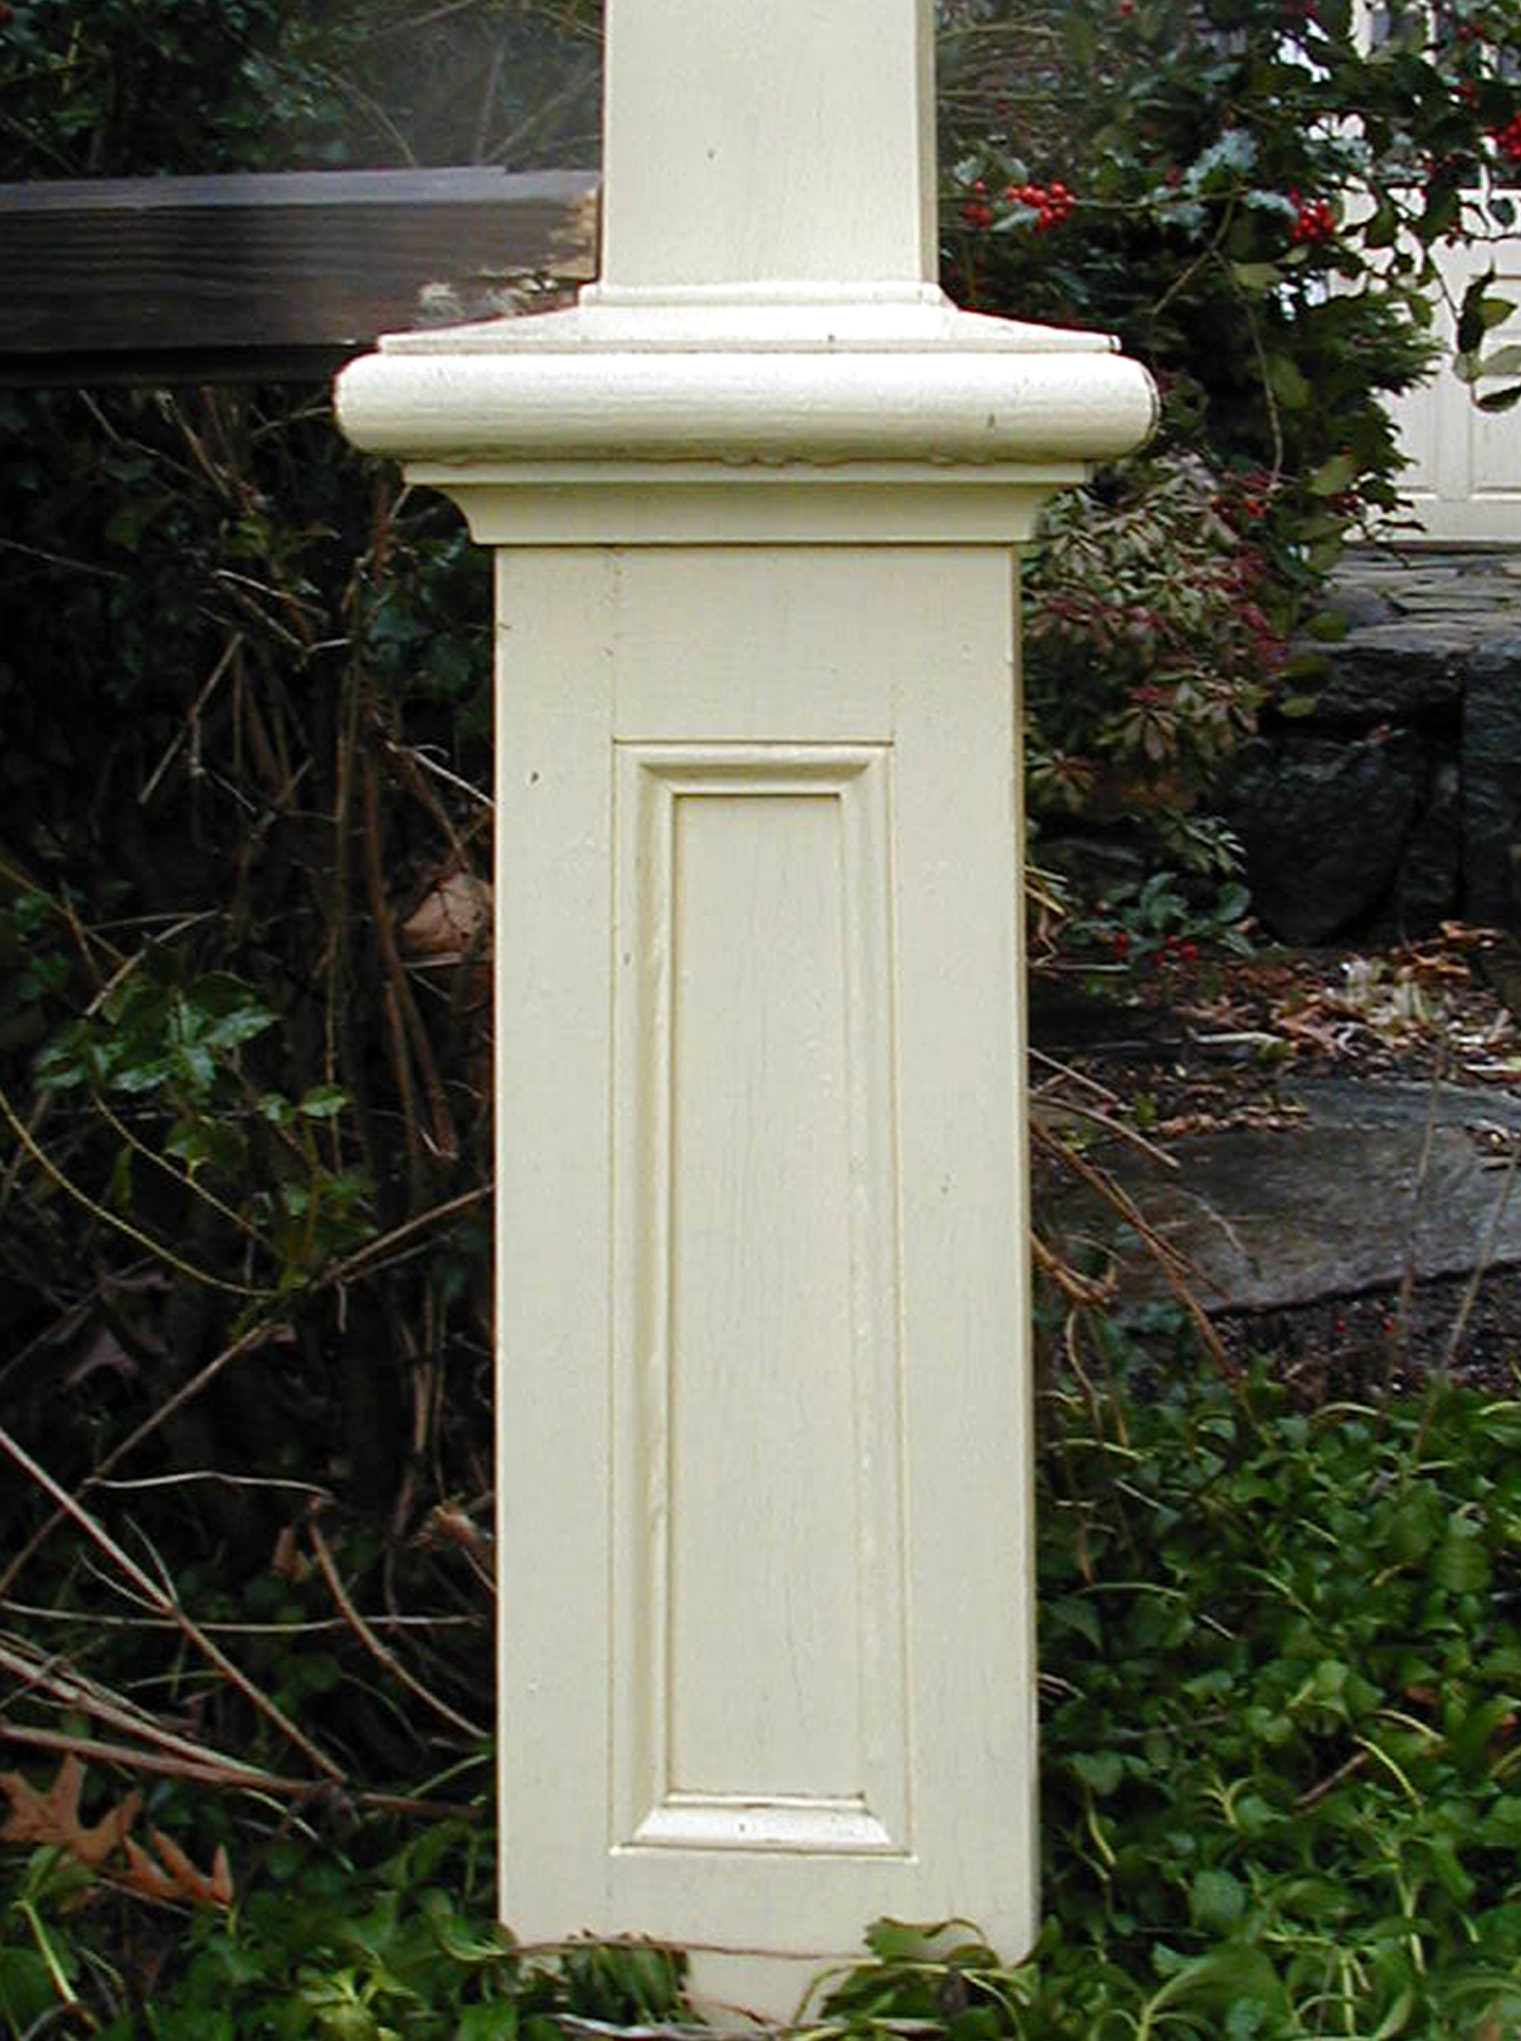 frugal yardb design landscaping lamp with slope small outdoor post for sloping yard lighting front bb a home ideas track bsloping garden